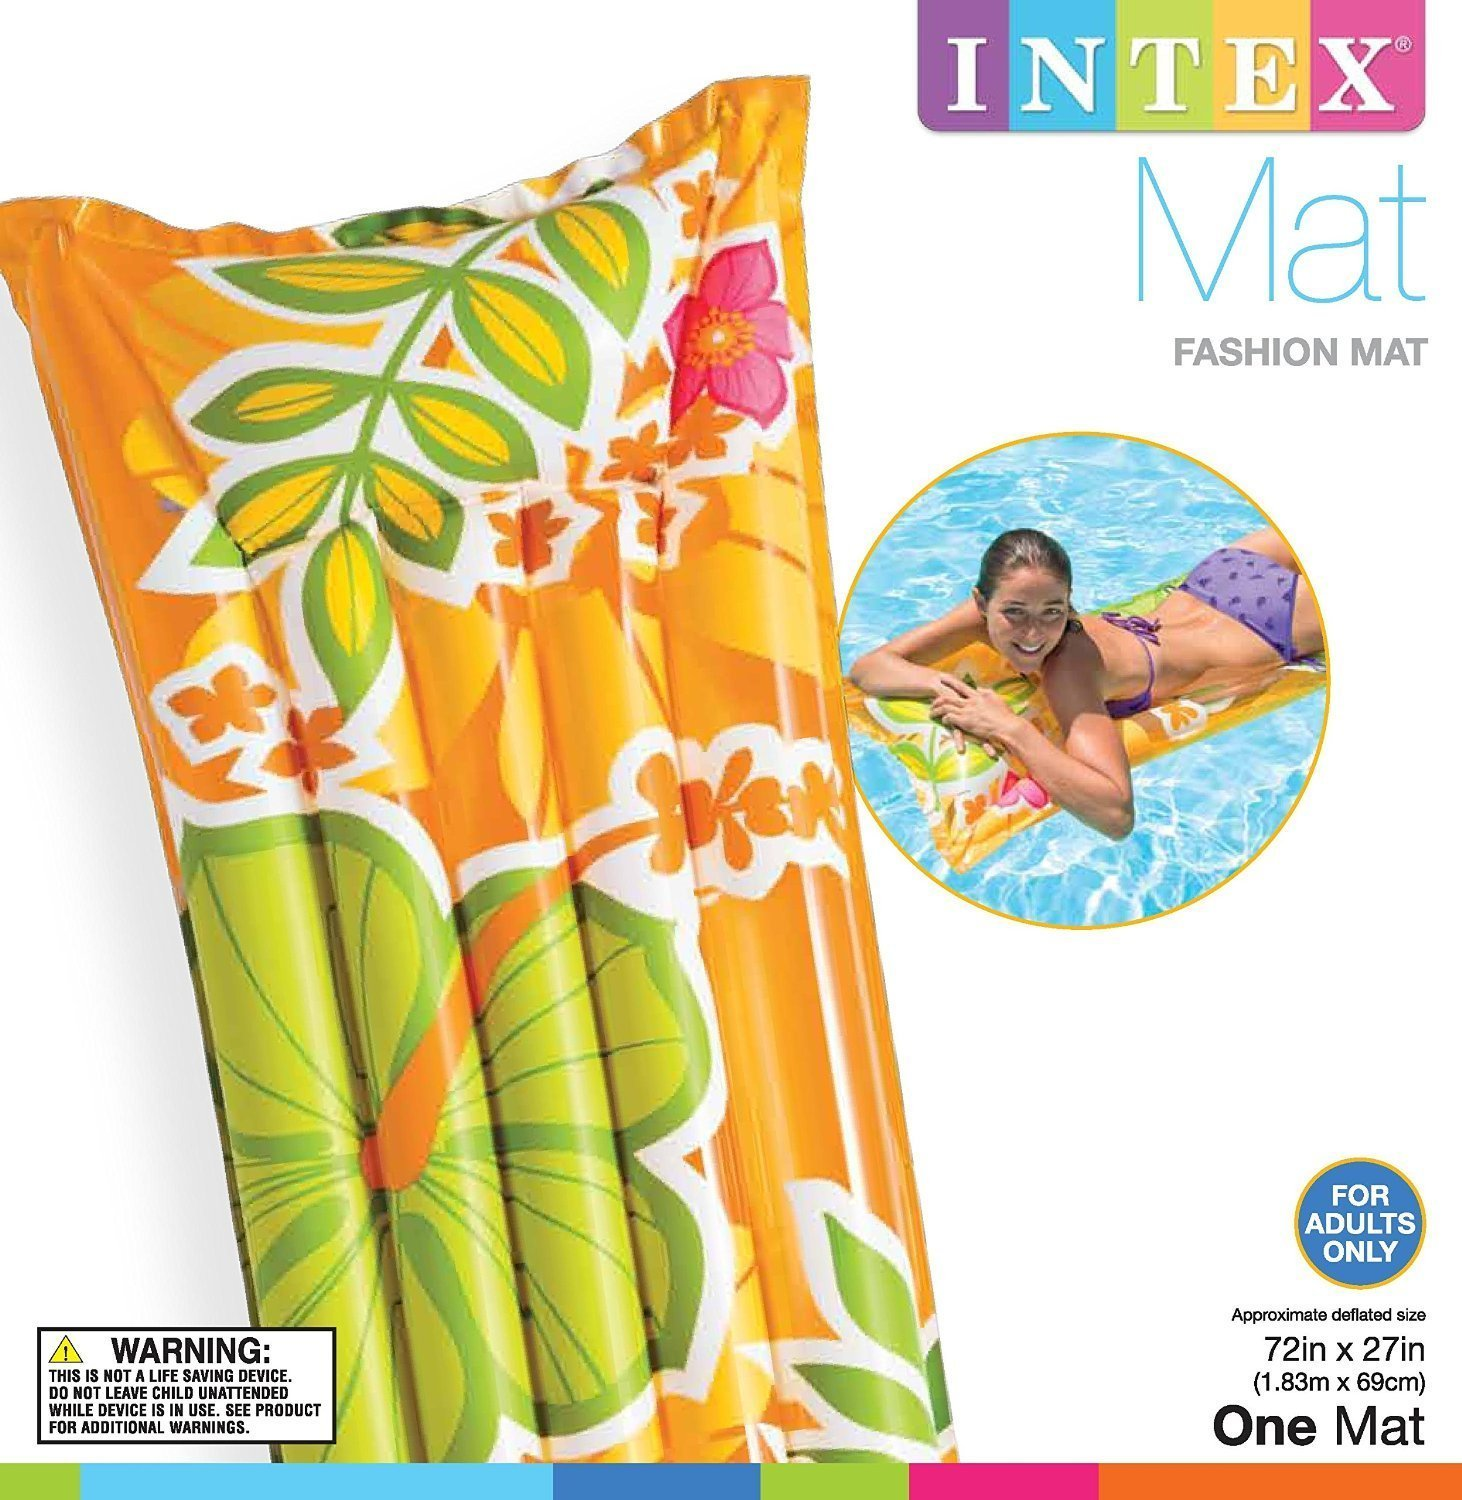 Amazon.com: Intex 59720ep hinchable Fashion de aire, 72